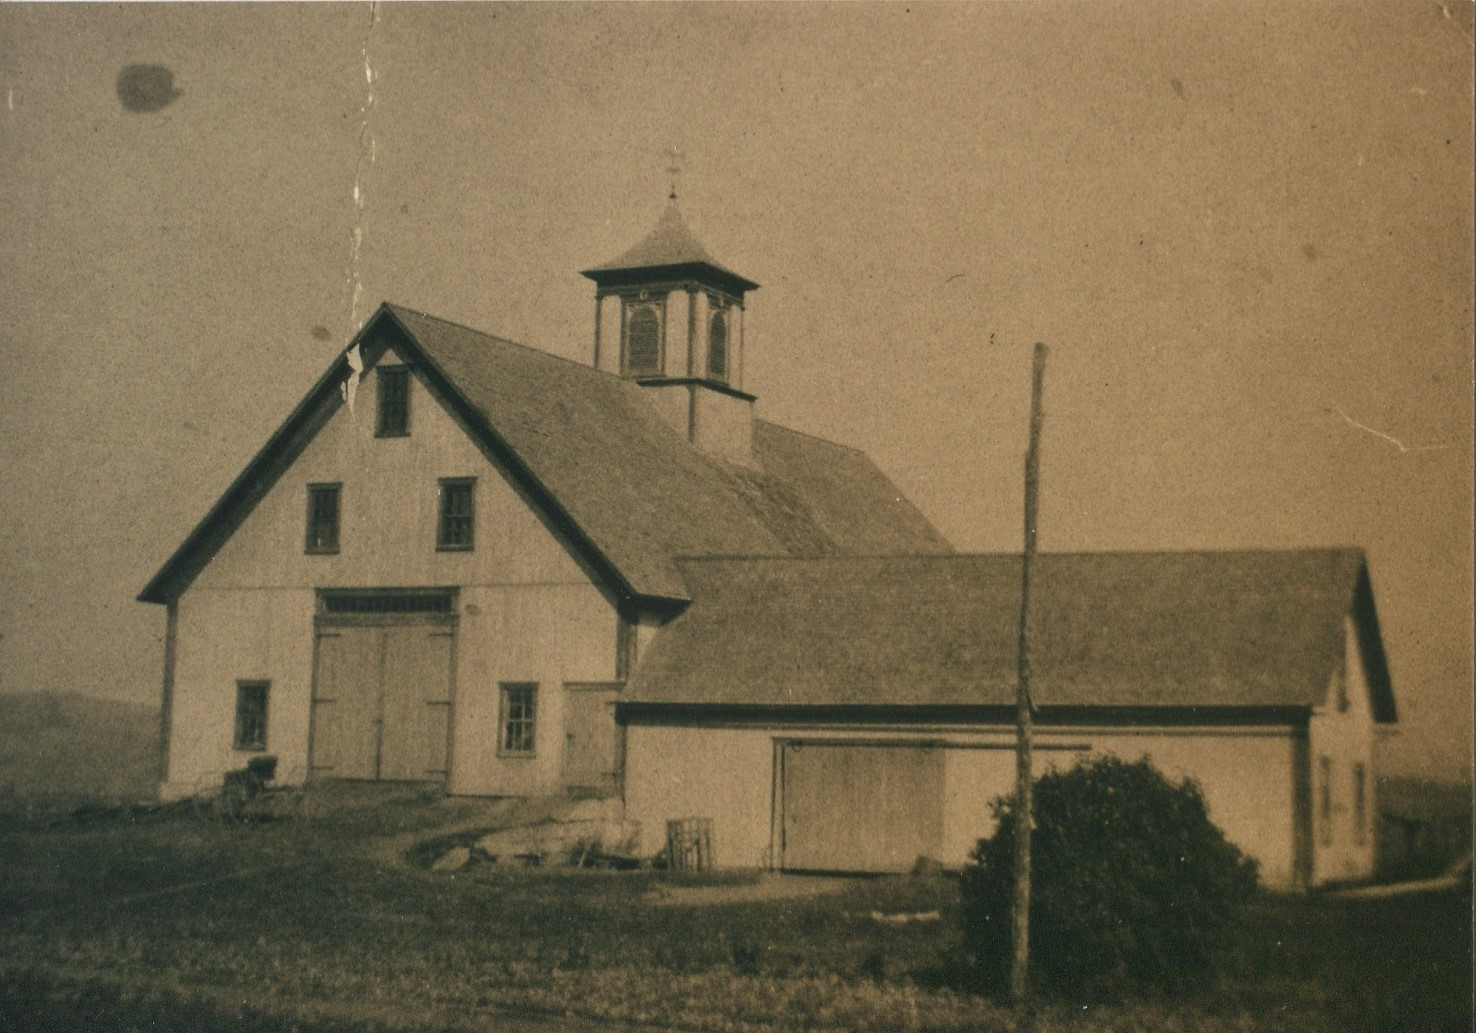 circa 1880 - The original barn on this site was built in the late 1700s. This first photo of the barn was taken in 1880 when it only had one cupola before the second addition, cupola, and red paint.